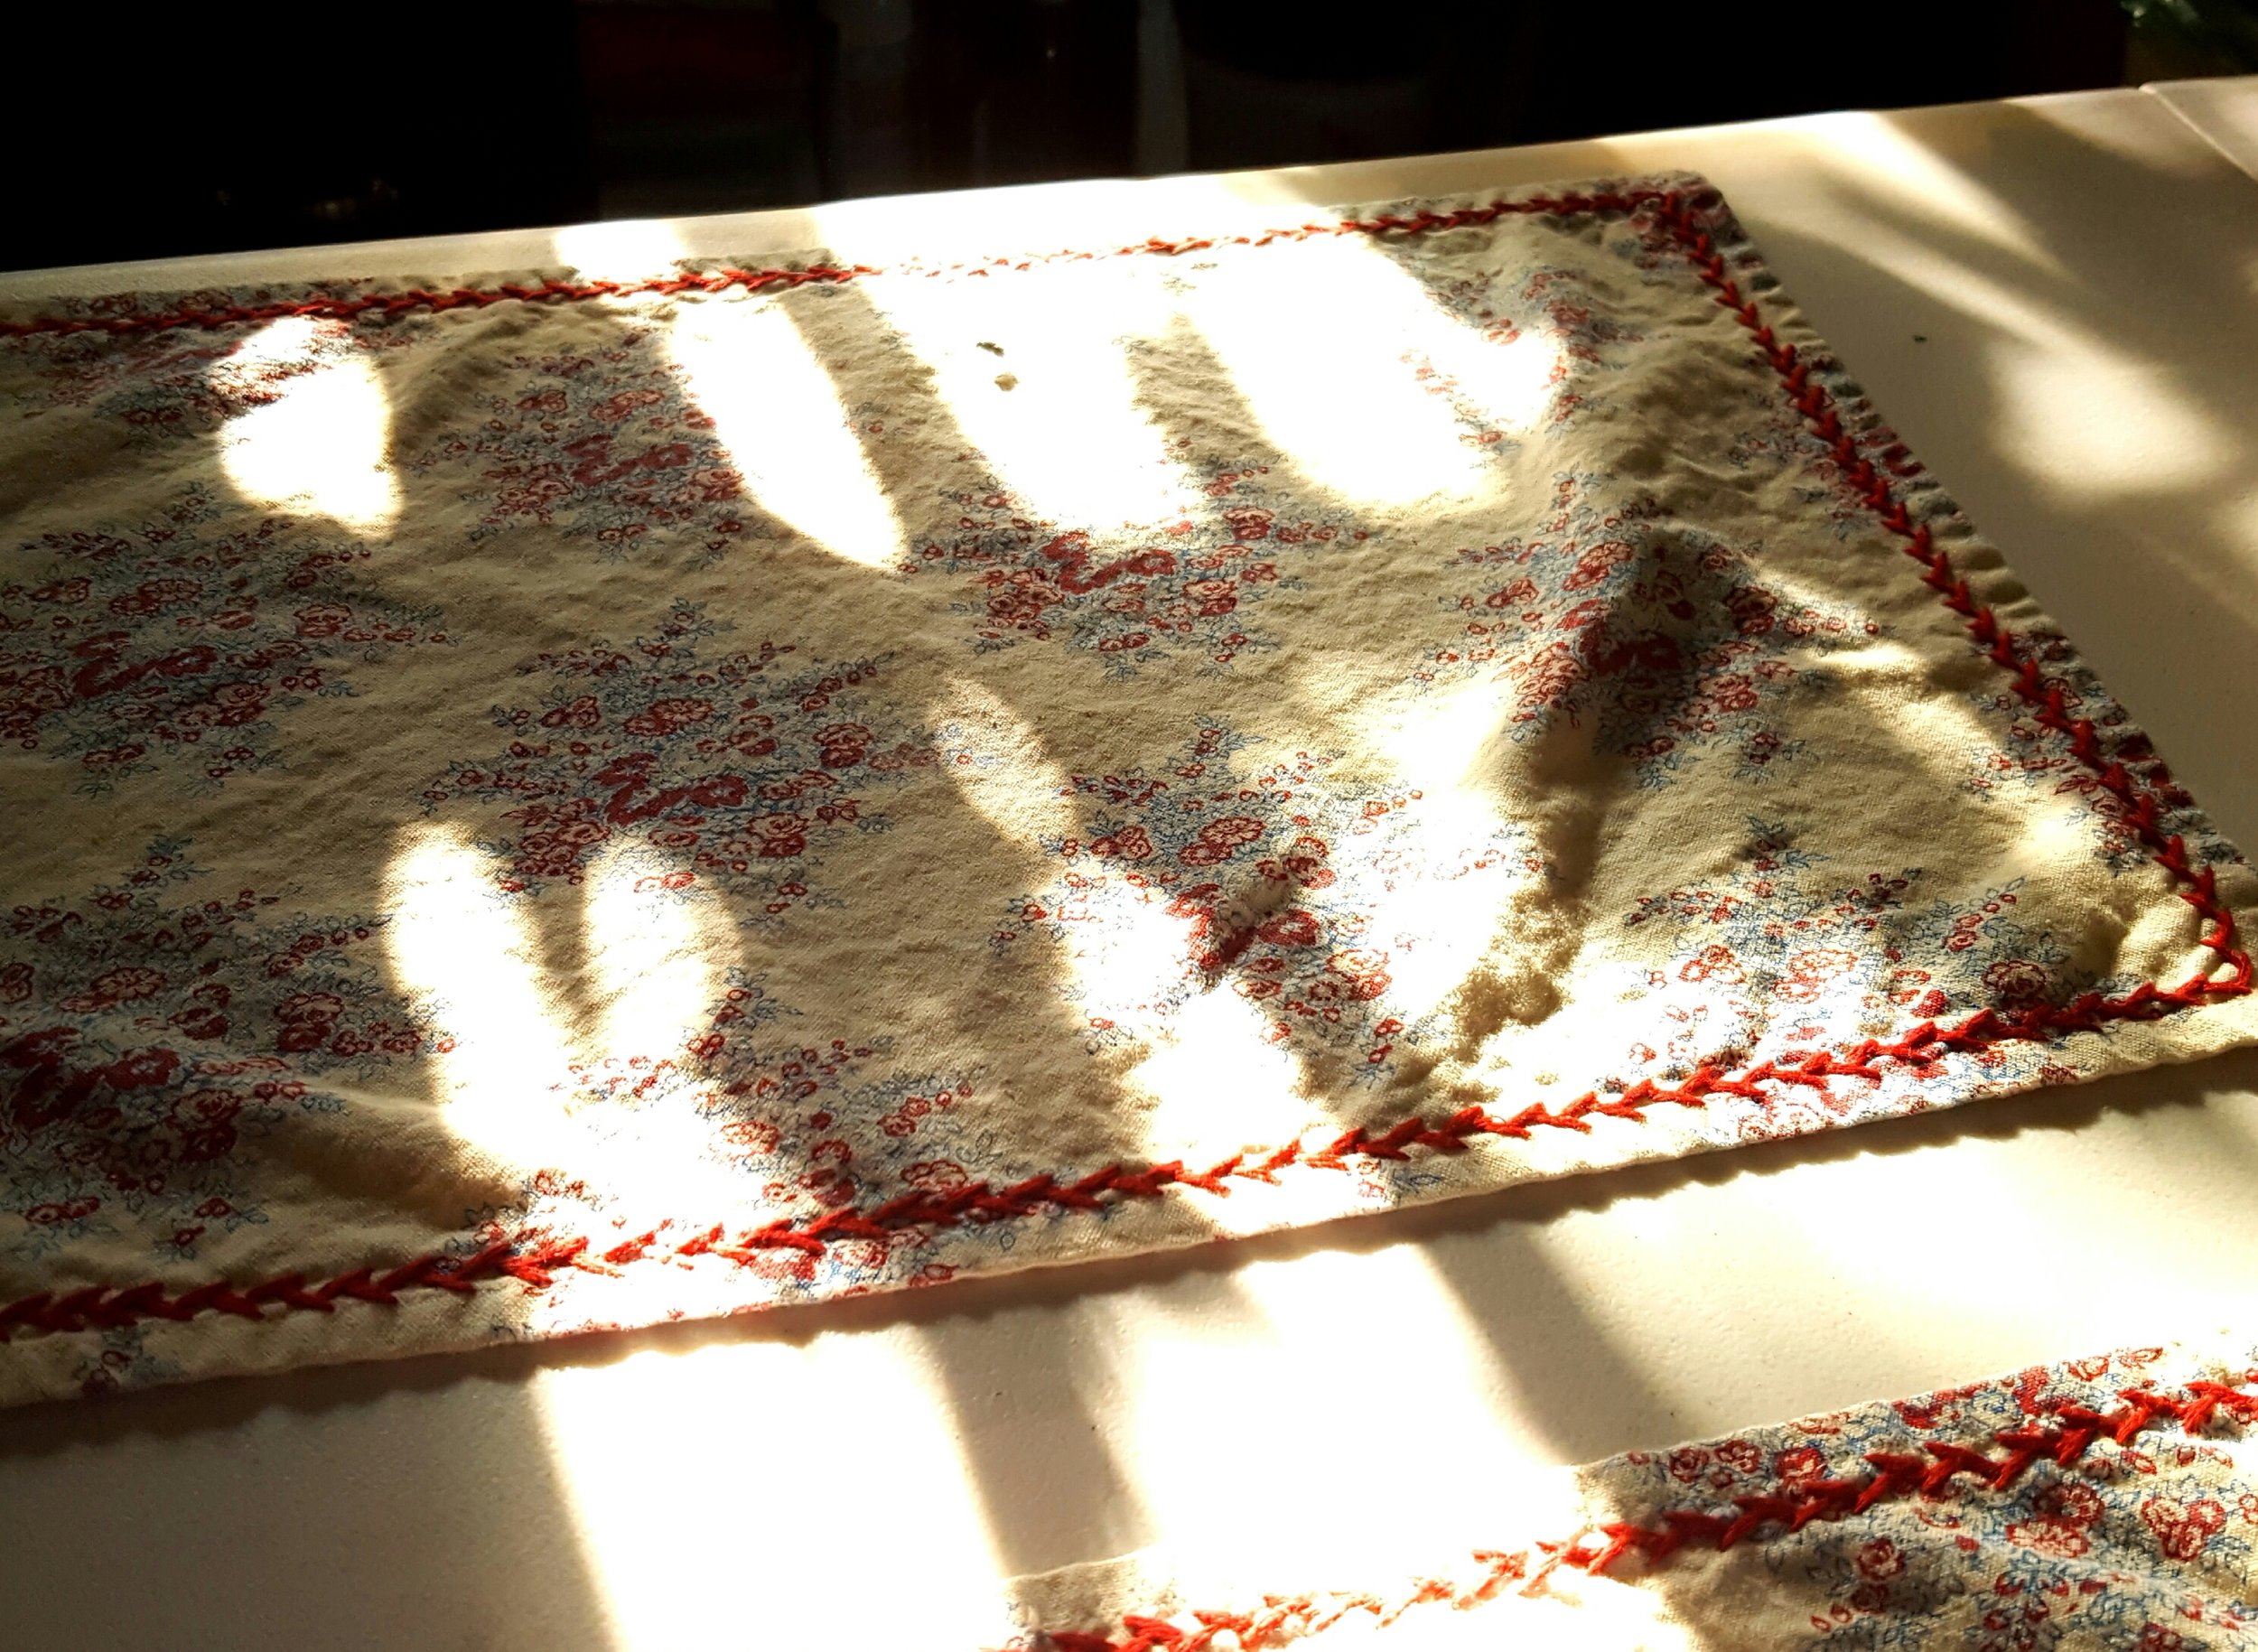 The morning sunshine leaving its dancing pattern on my table.